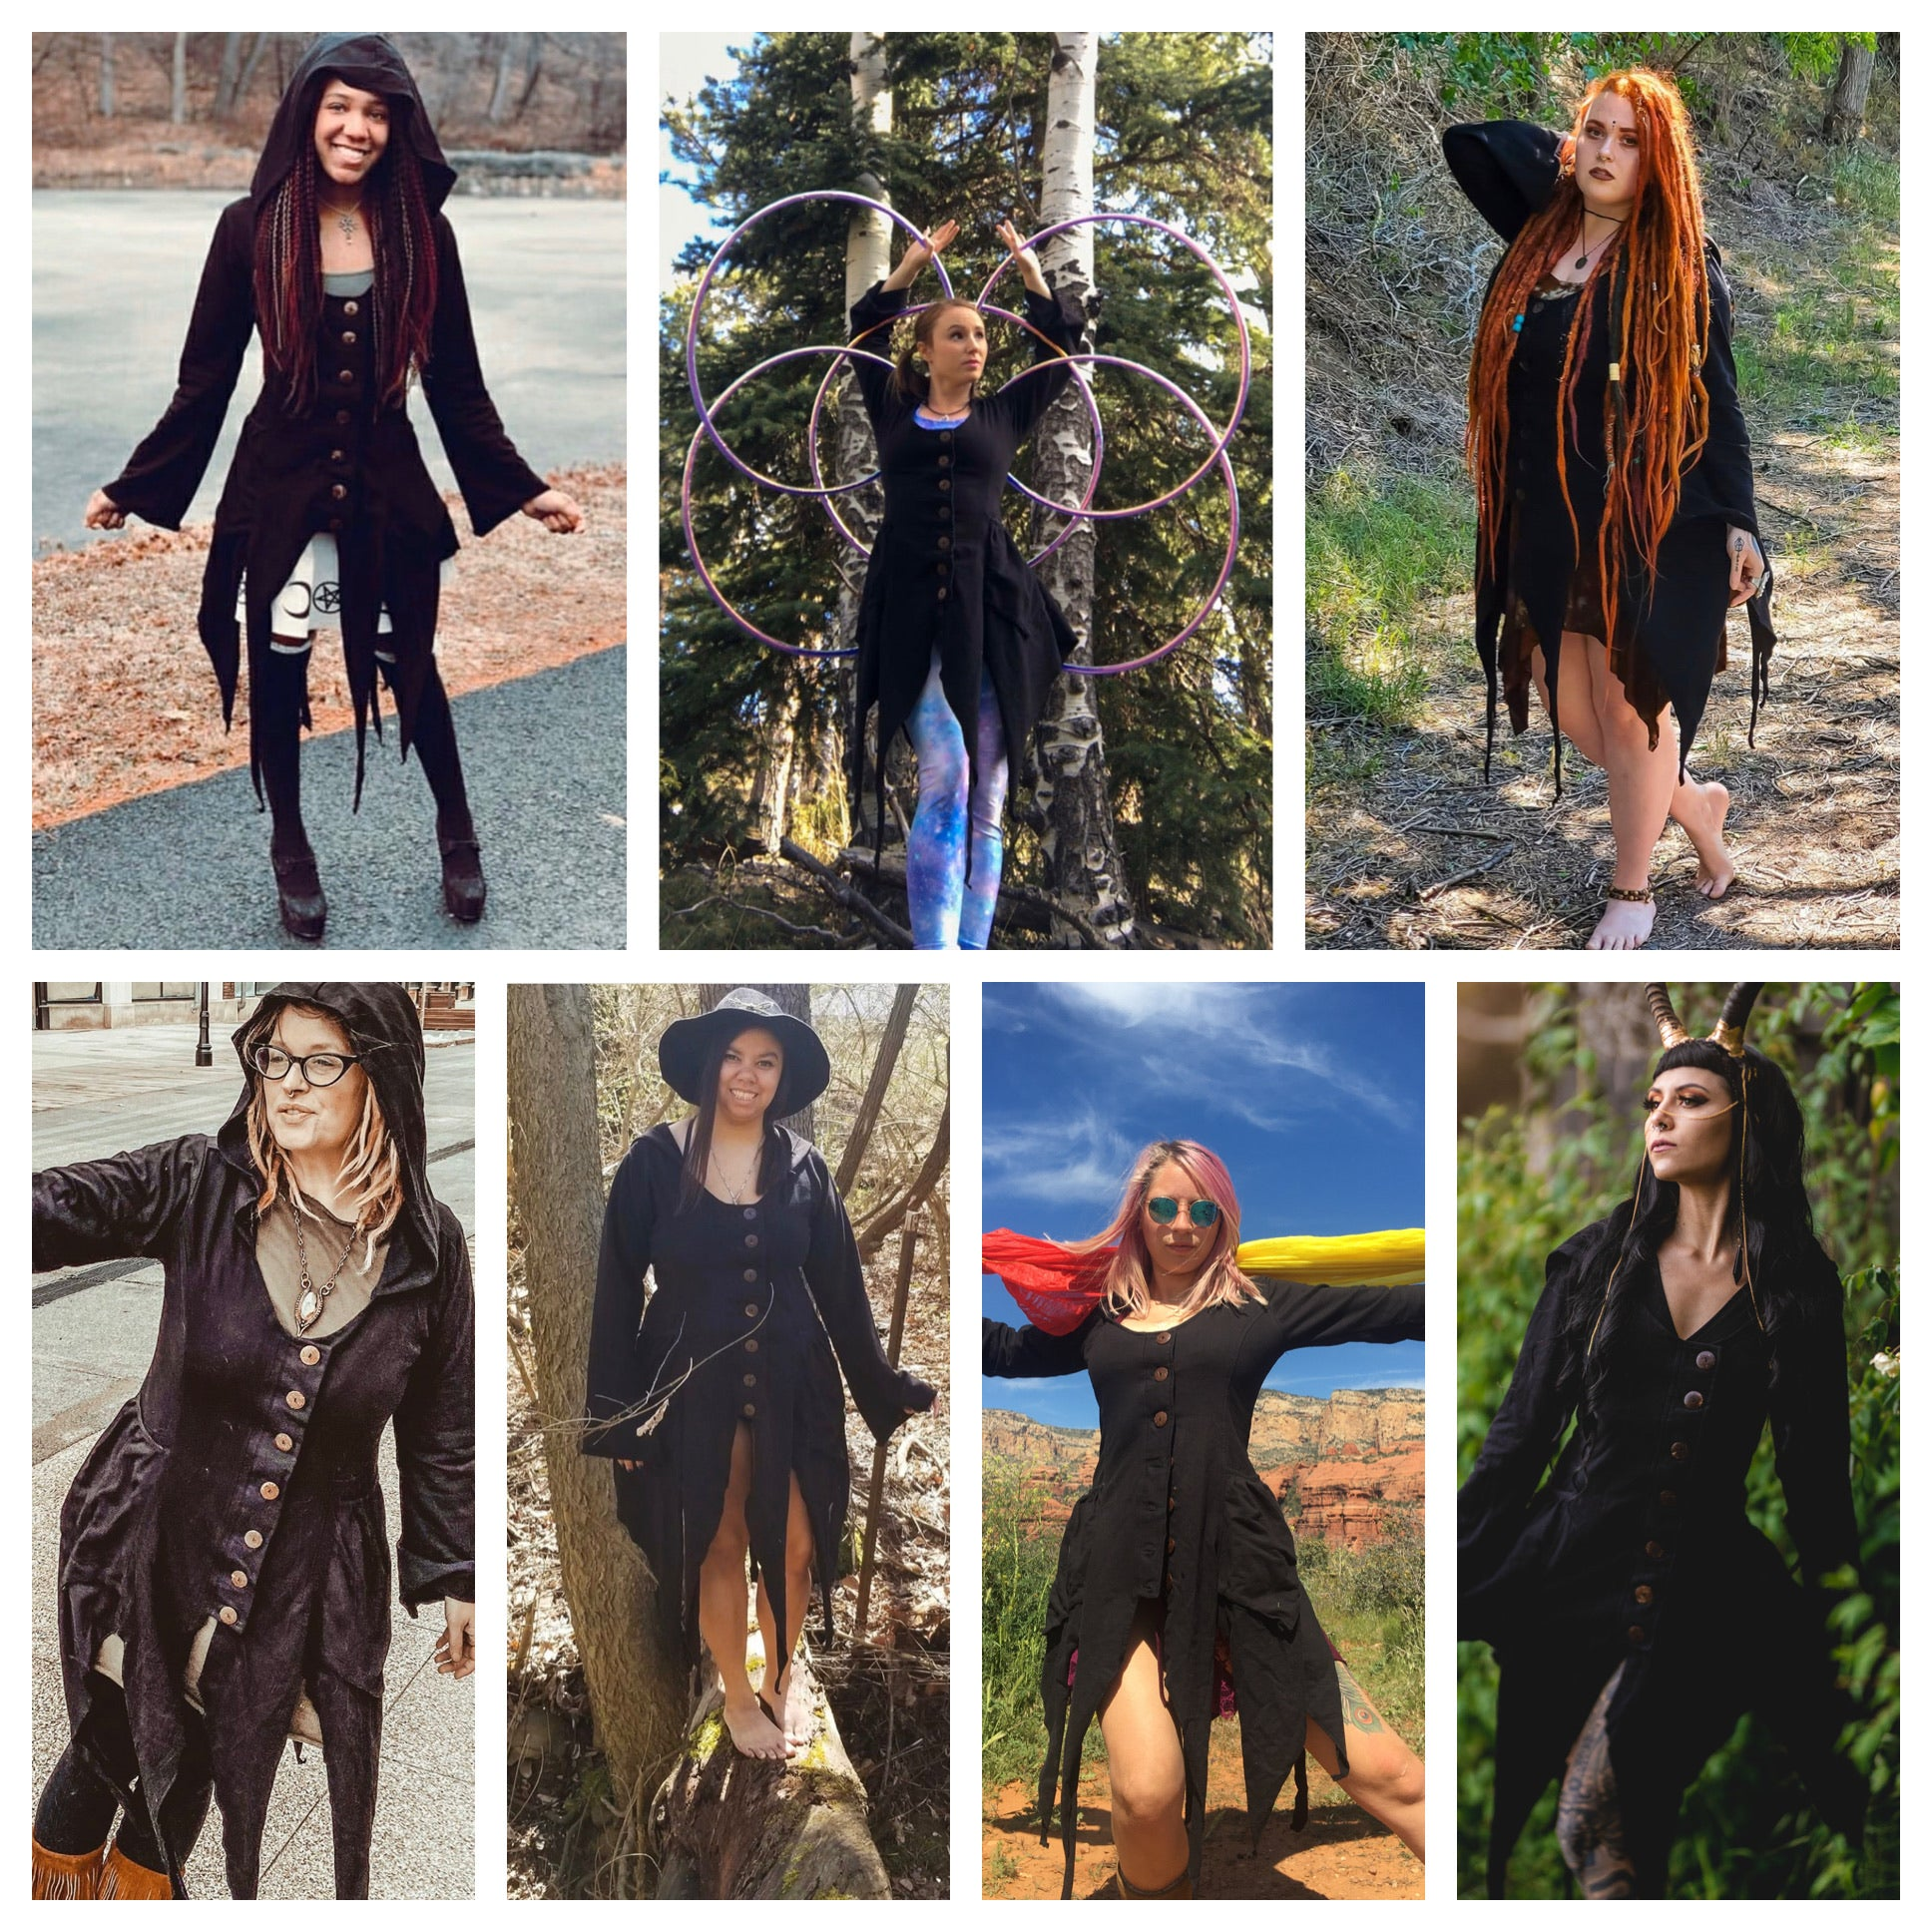 ALL BLACK FAIRY JACKETS